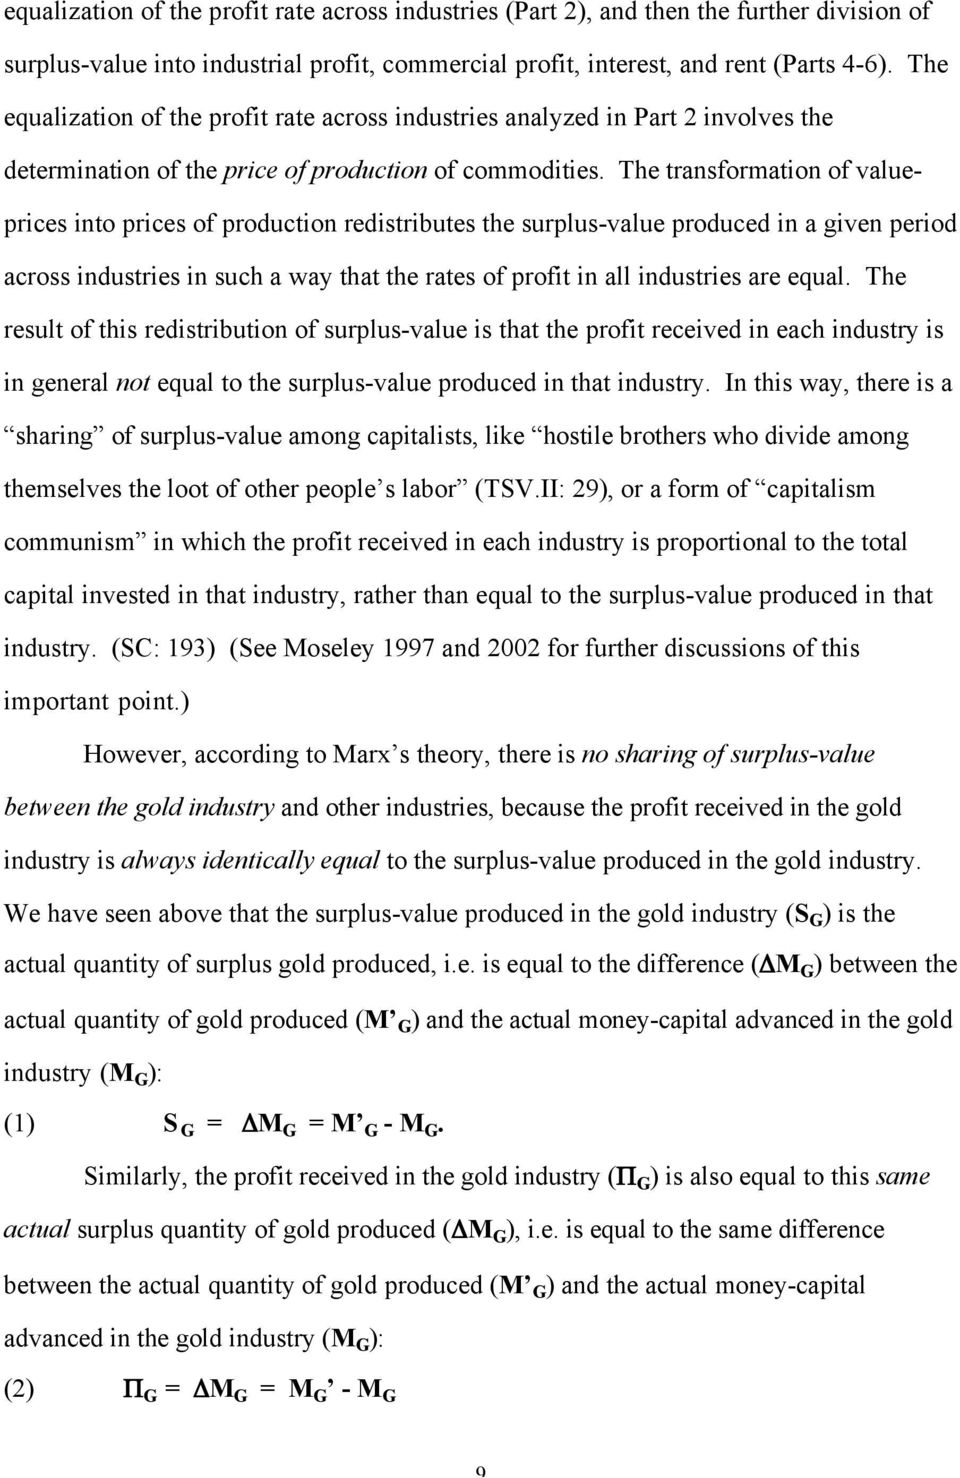 The transformation of valueprices into prices of production redistributes the surplus-value produced in a given period across industries in such a way that the rates of profit in all industries are